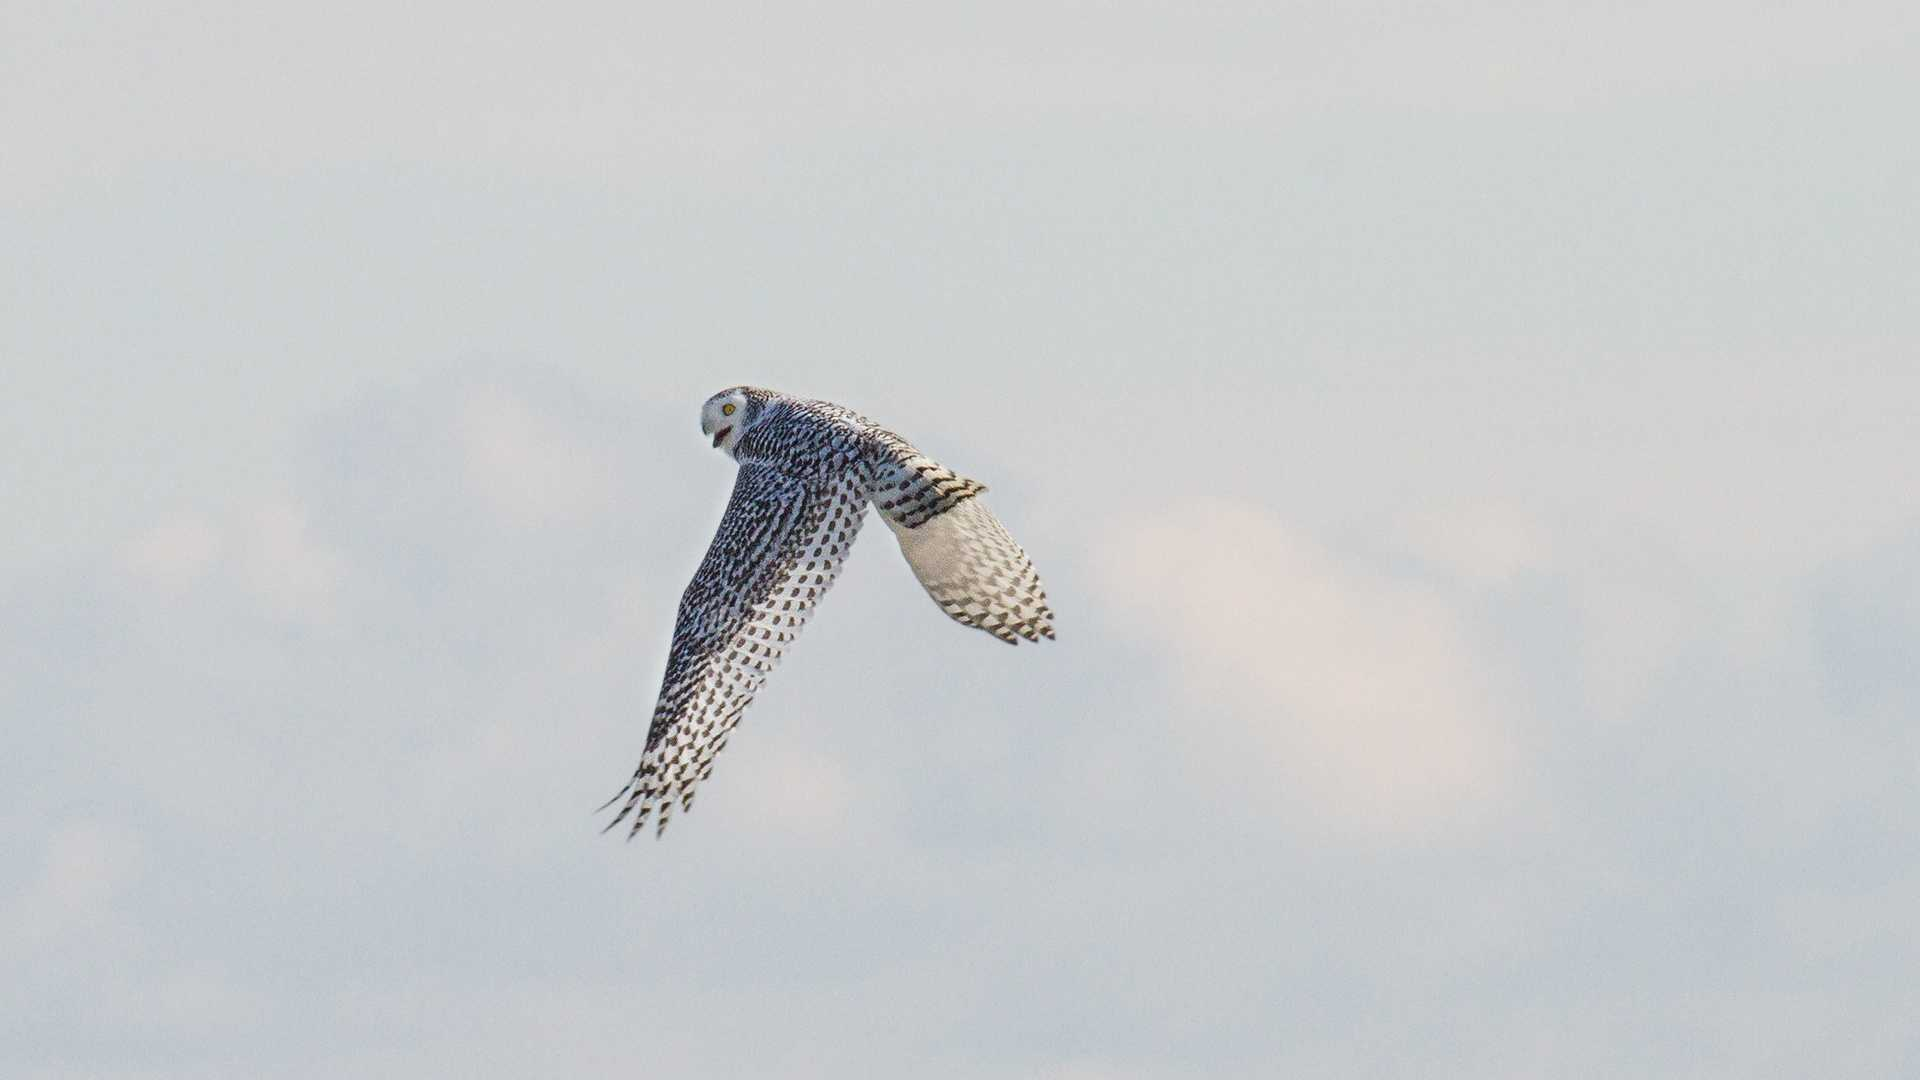 The Center for Wildlife in Cape Neddick released a Snowy Owl back into the wild on Saturday. Click through to see more photos.